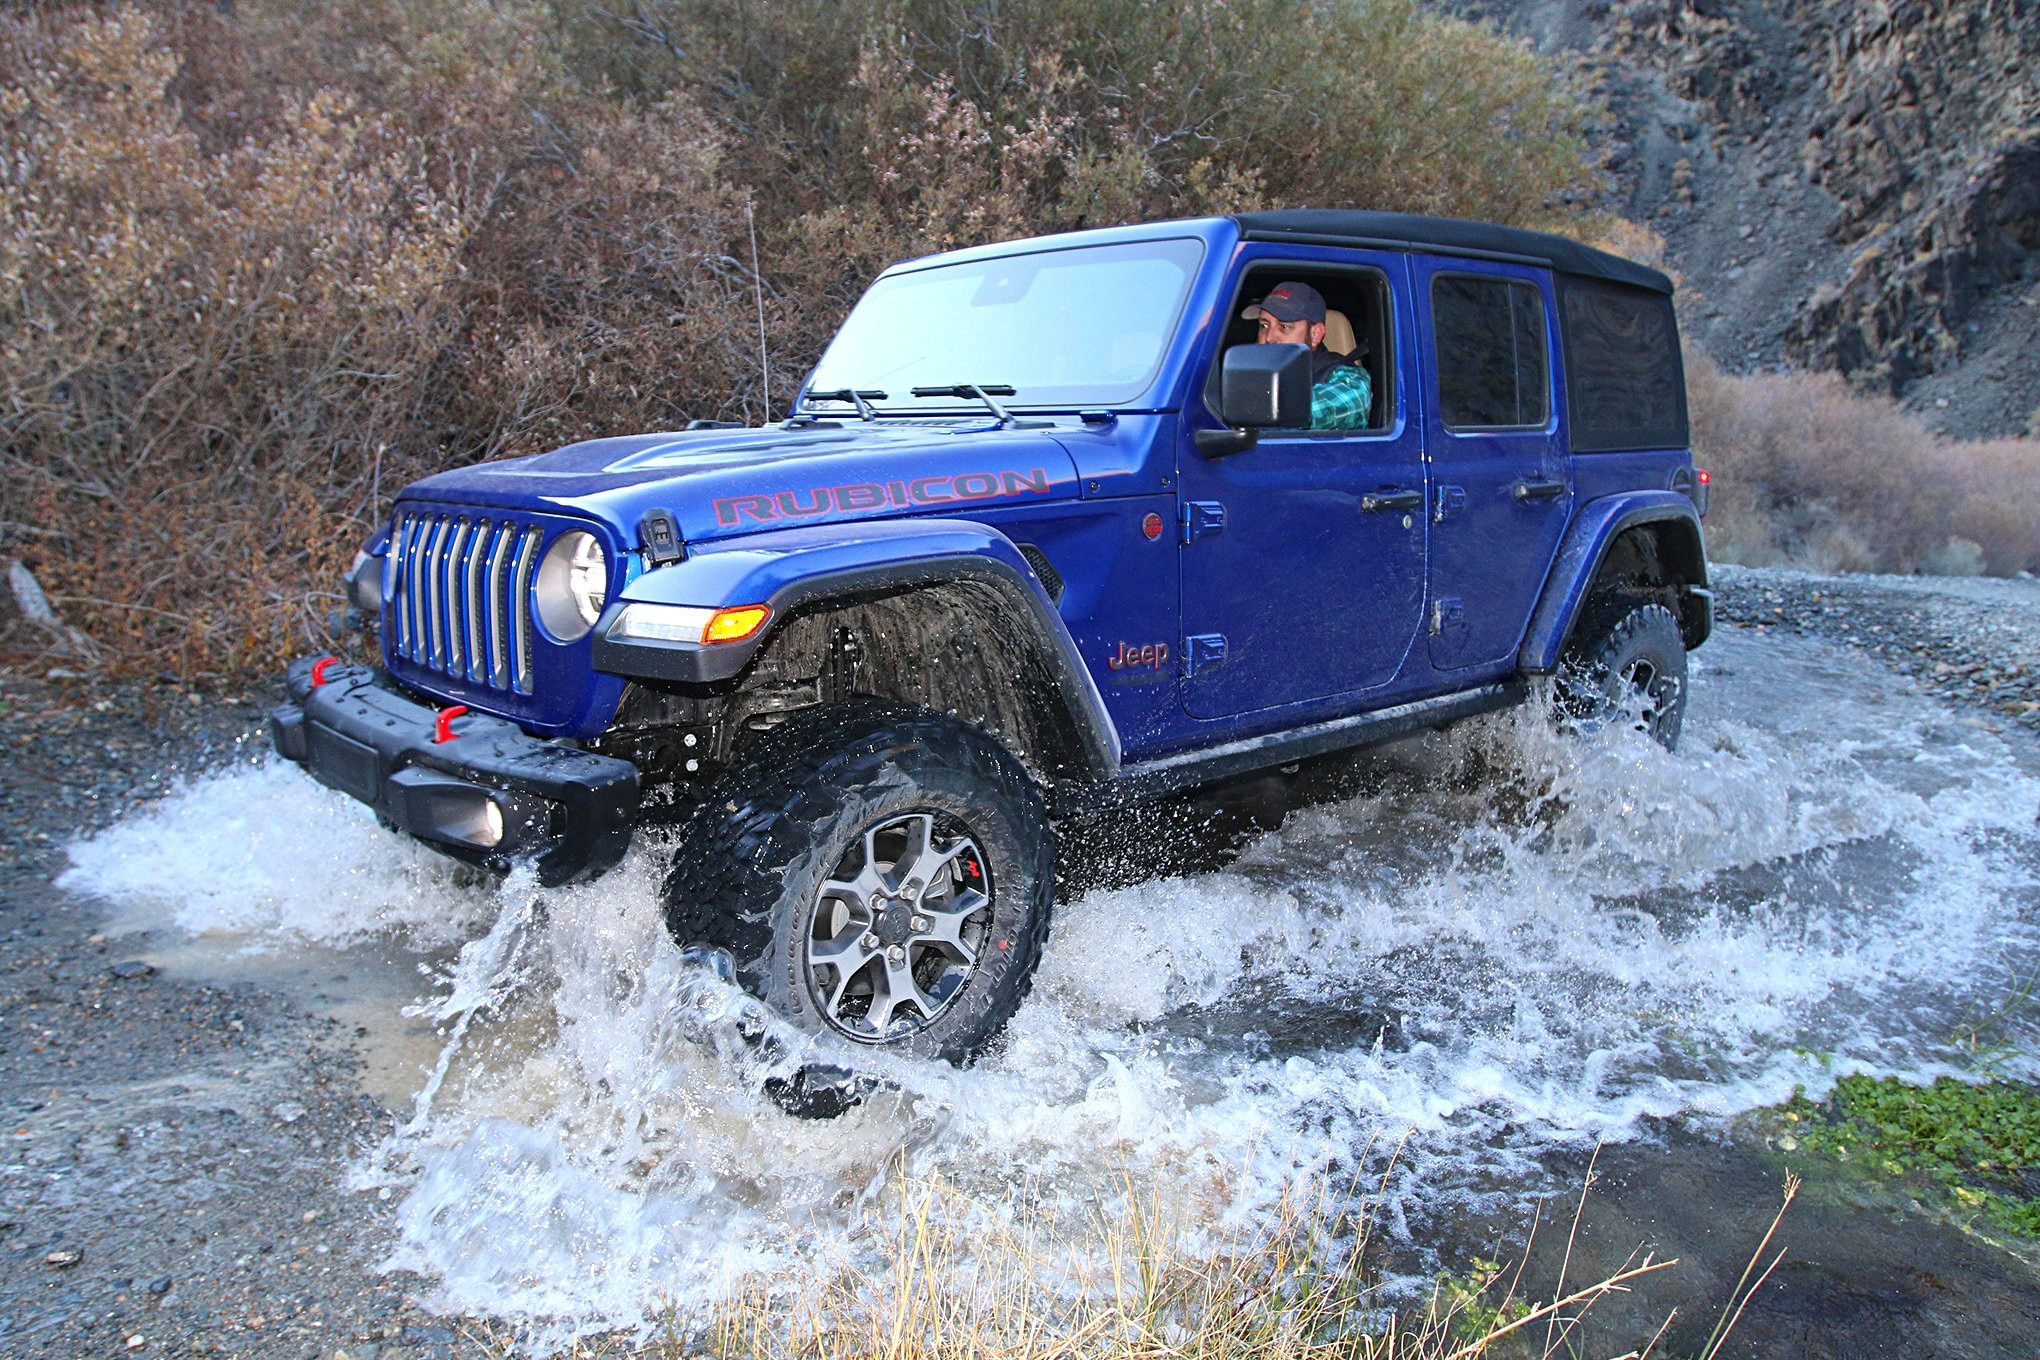 2019 suv of the year jeep wrangler unlimited rubicon crossing water.JPG